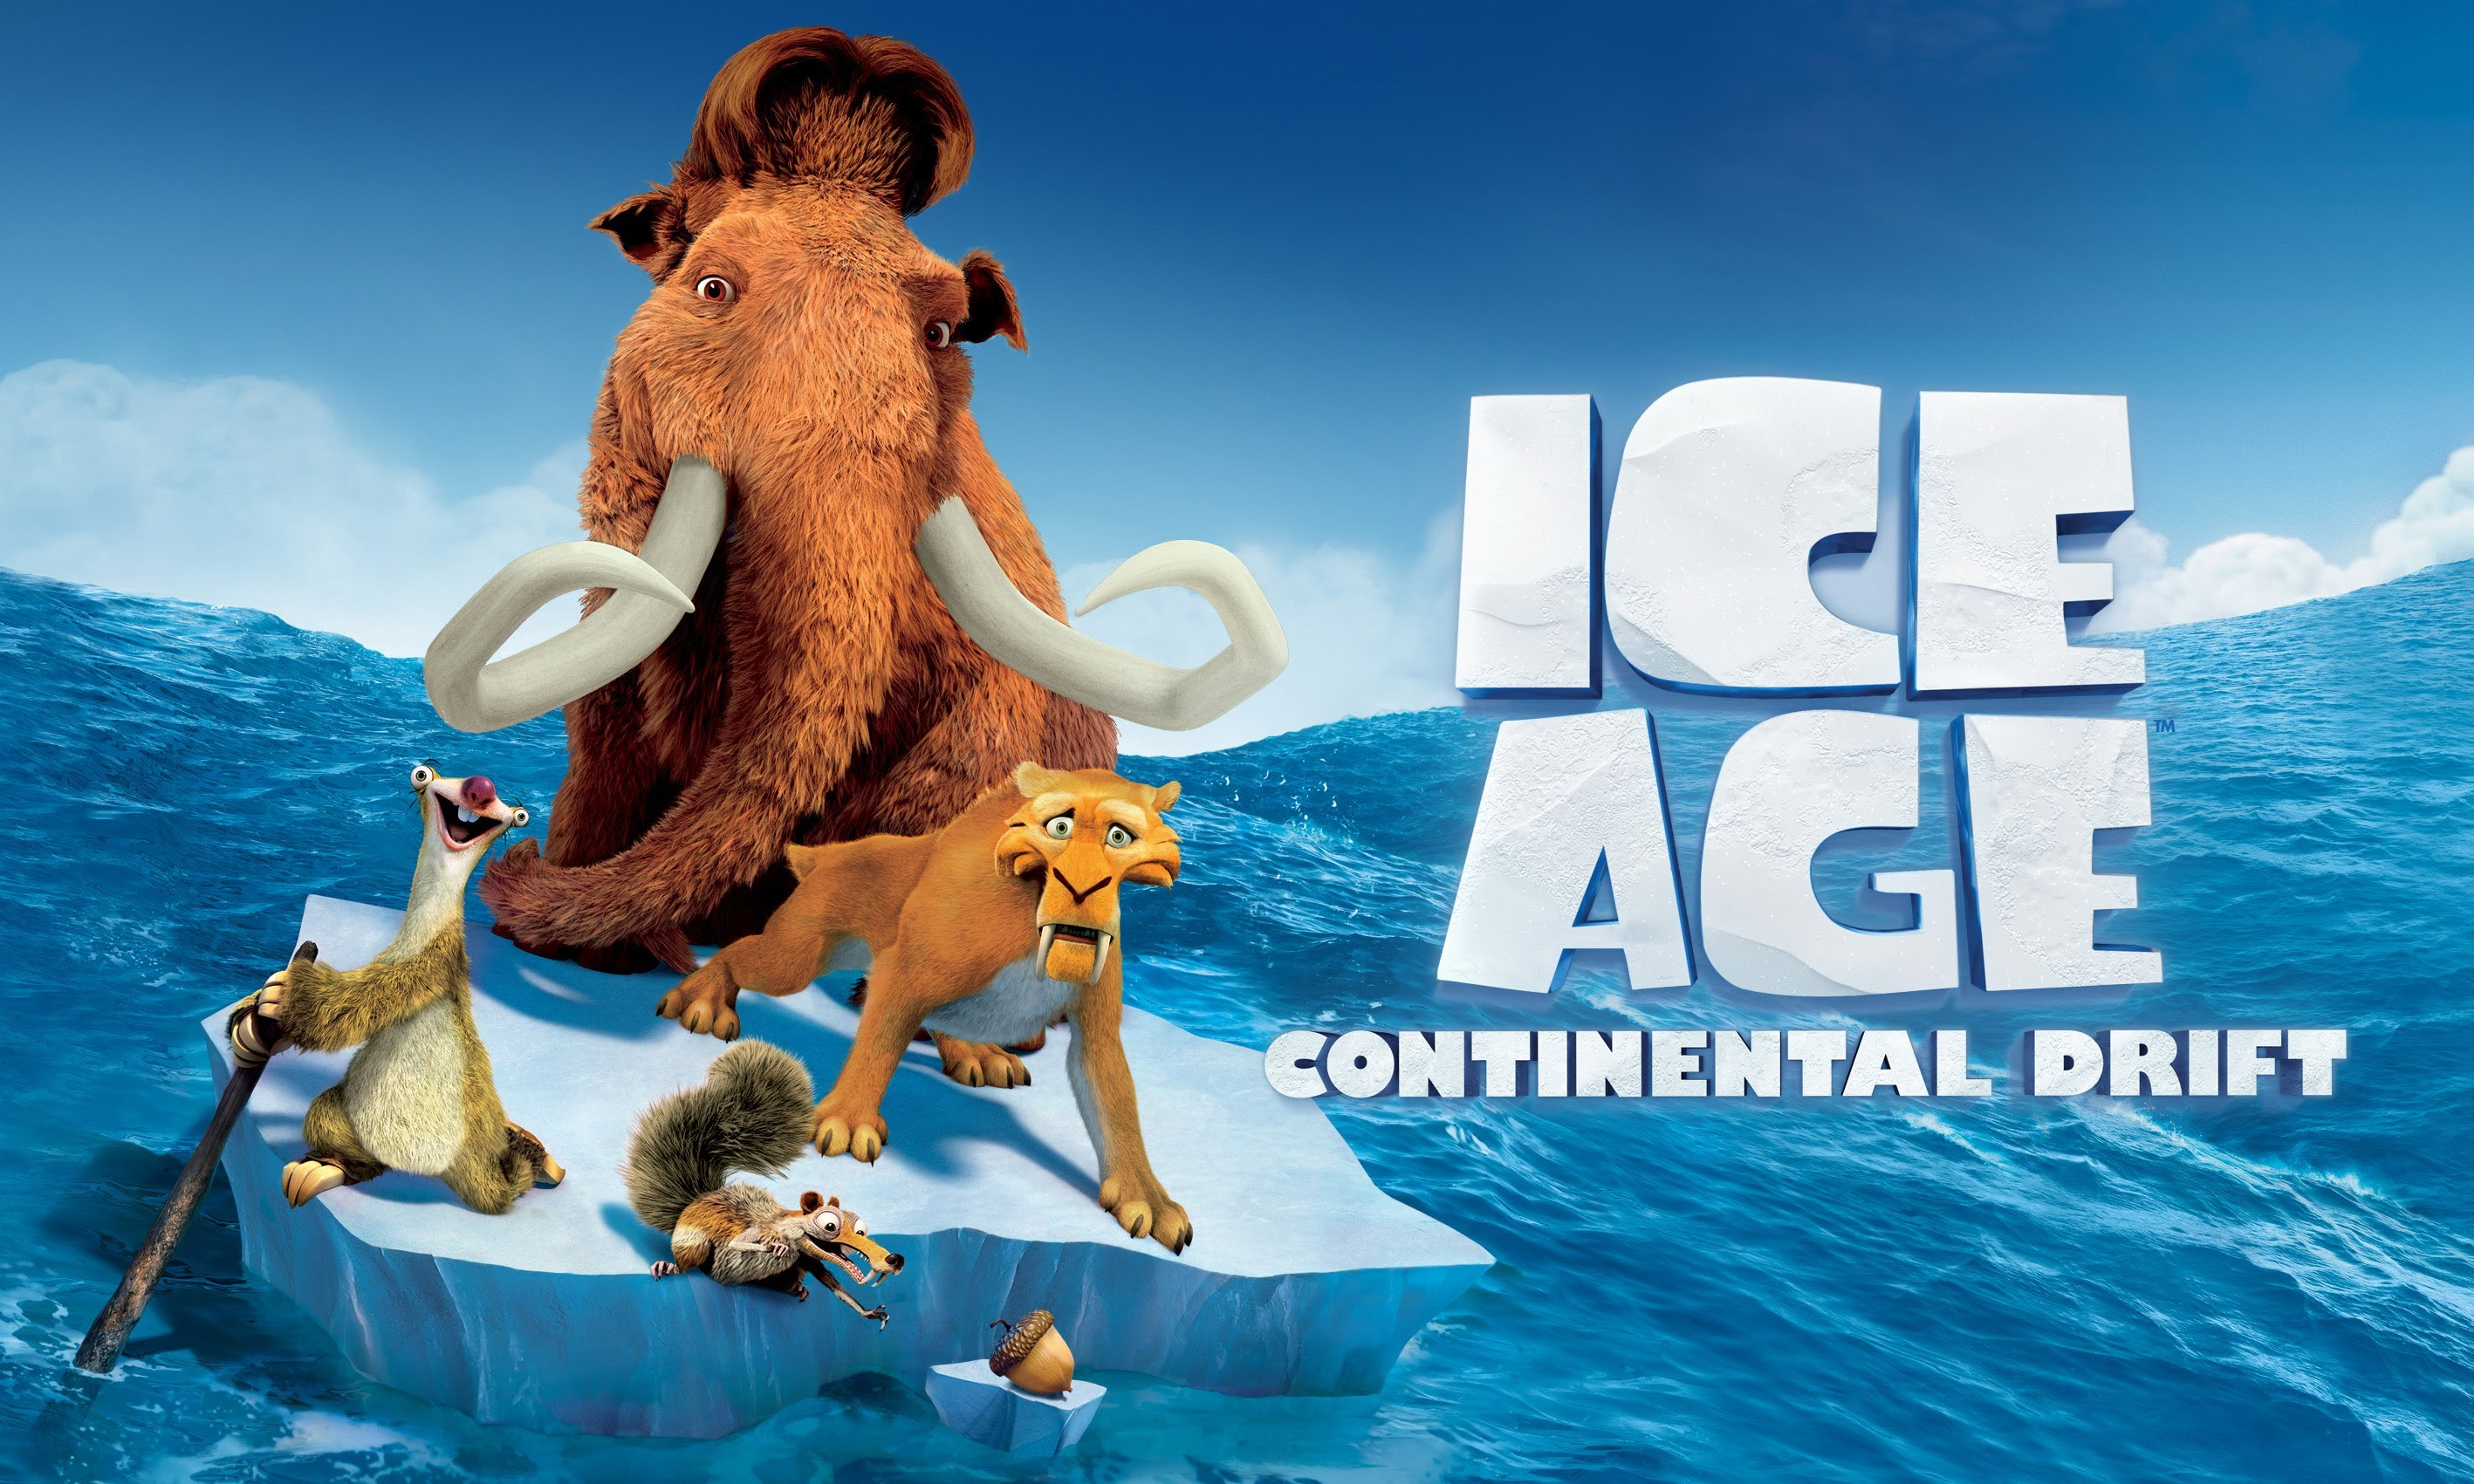 High Resolution Wallpaper | Ice Age: Continental Drift 2835x1701 px